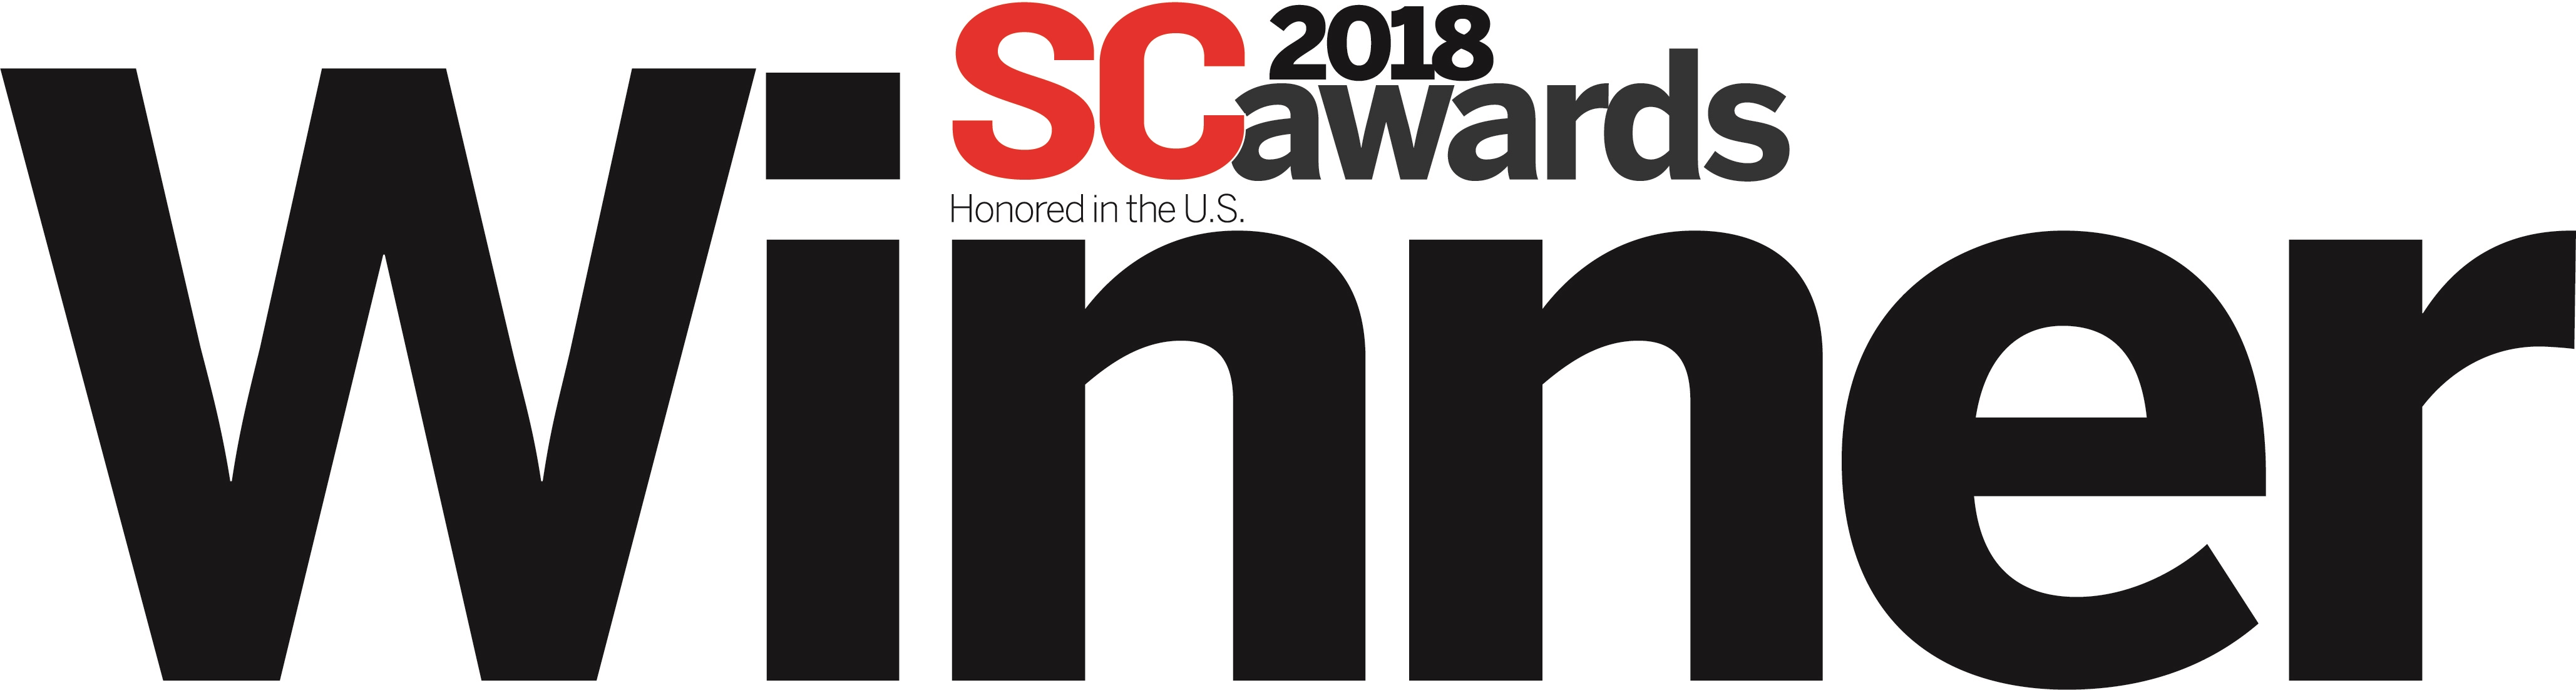 SCAWARDS2018_winner logo